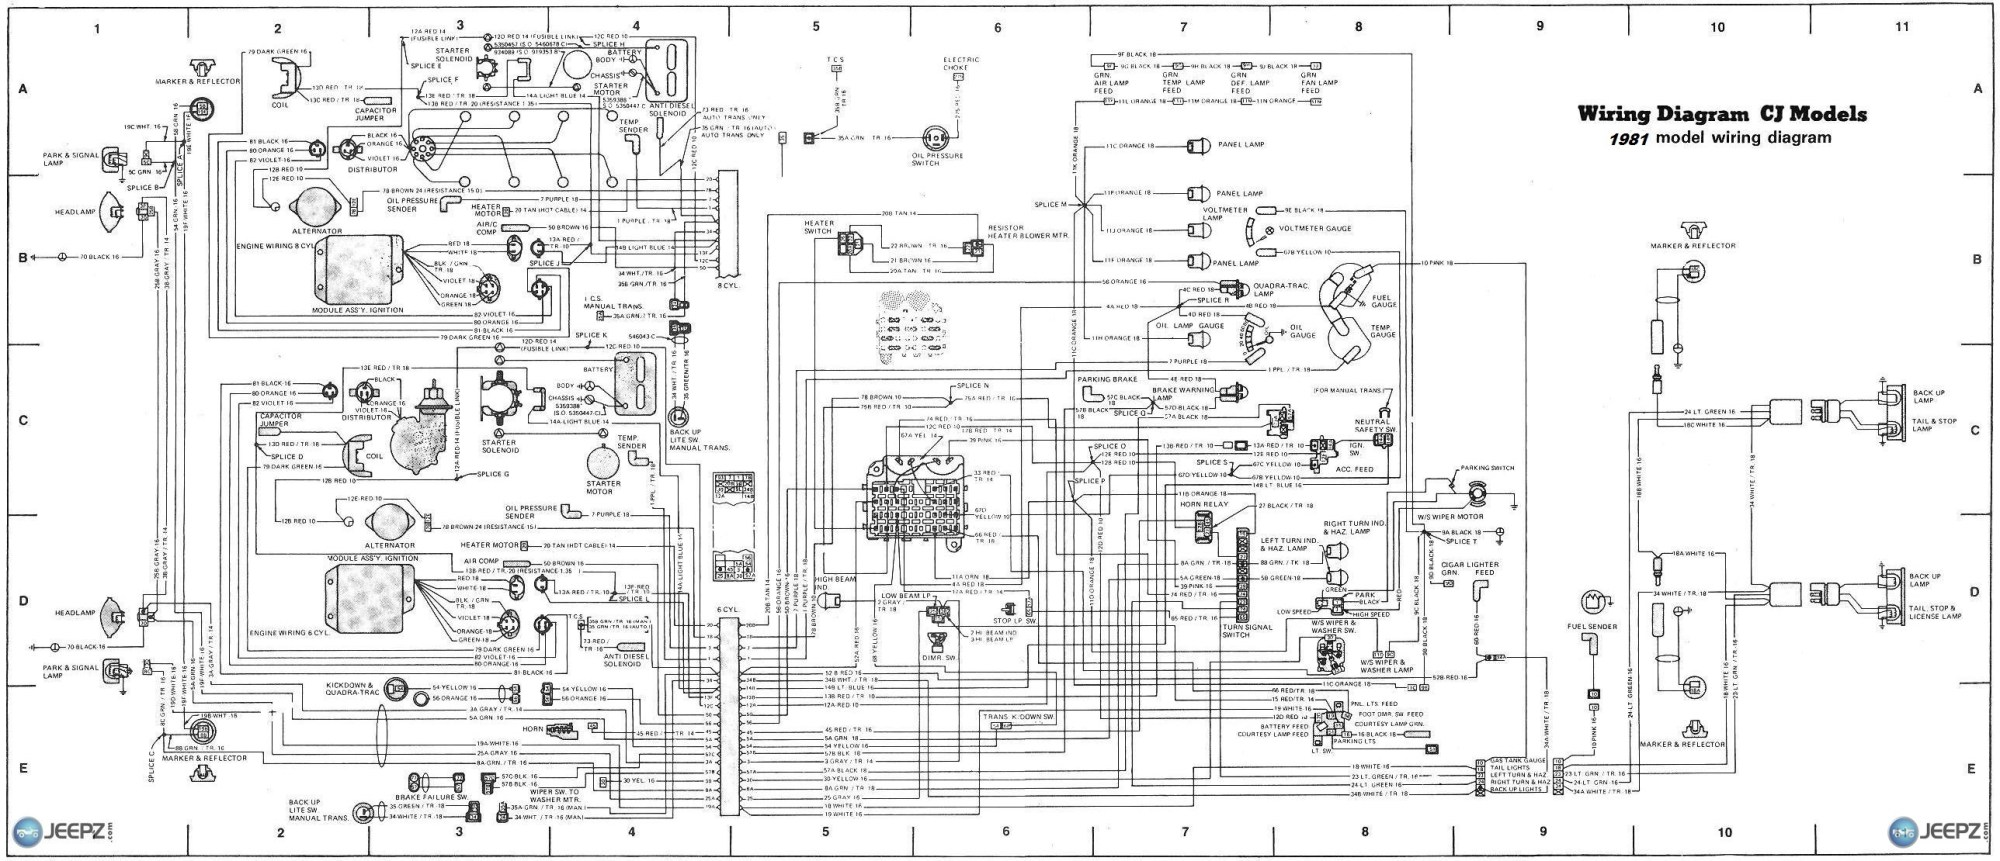 hight resolution of 1986 jeep wiring diagram wiring diagram third level jeep liberty wiring harness diagram 1977 cj7 dash